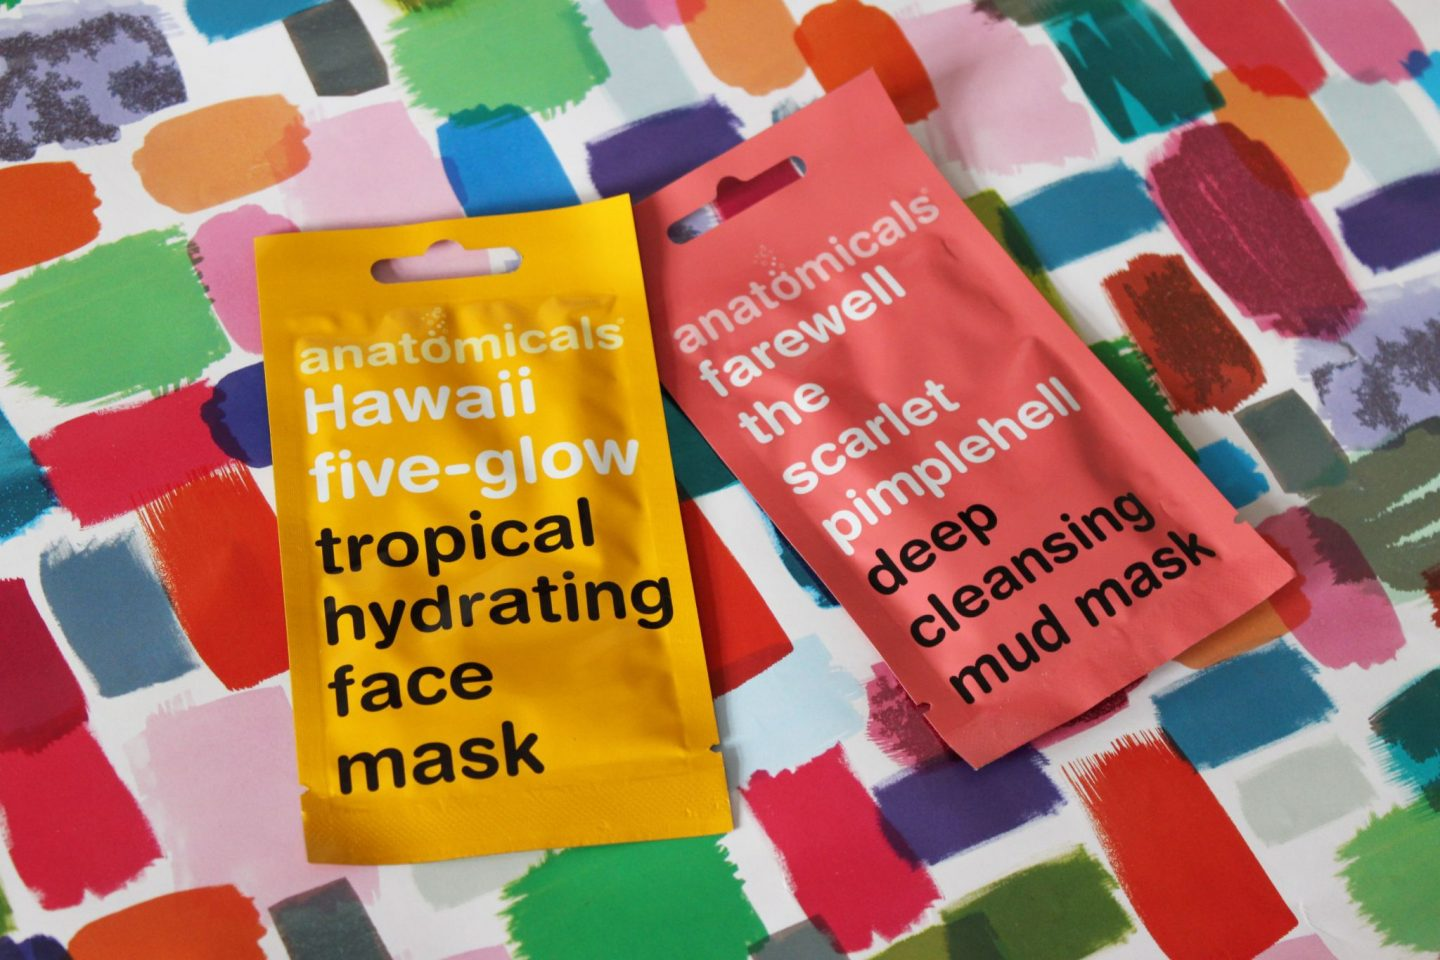 anatomicals face masks